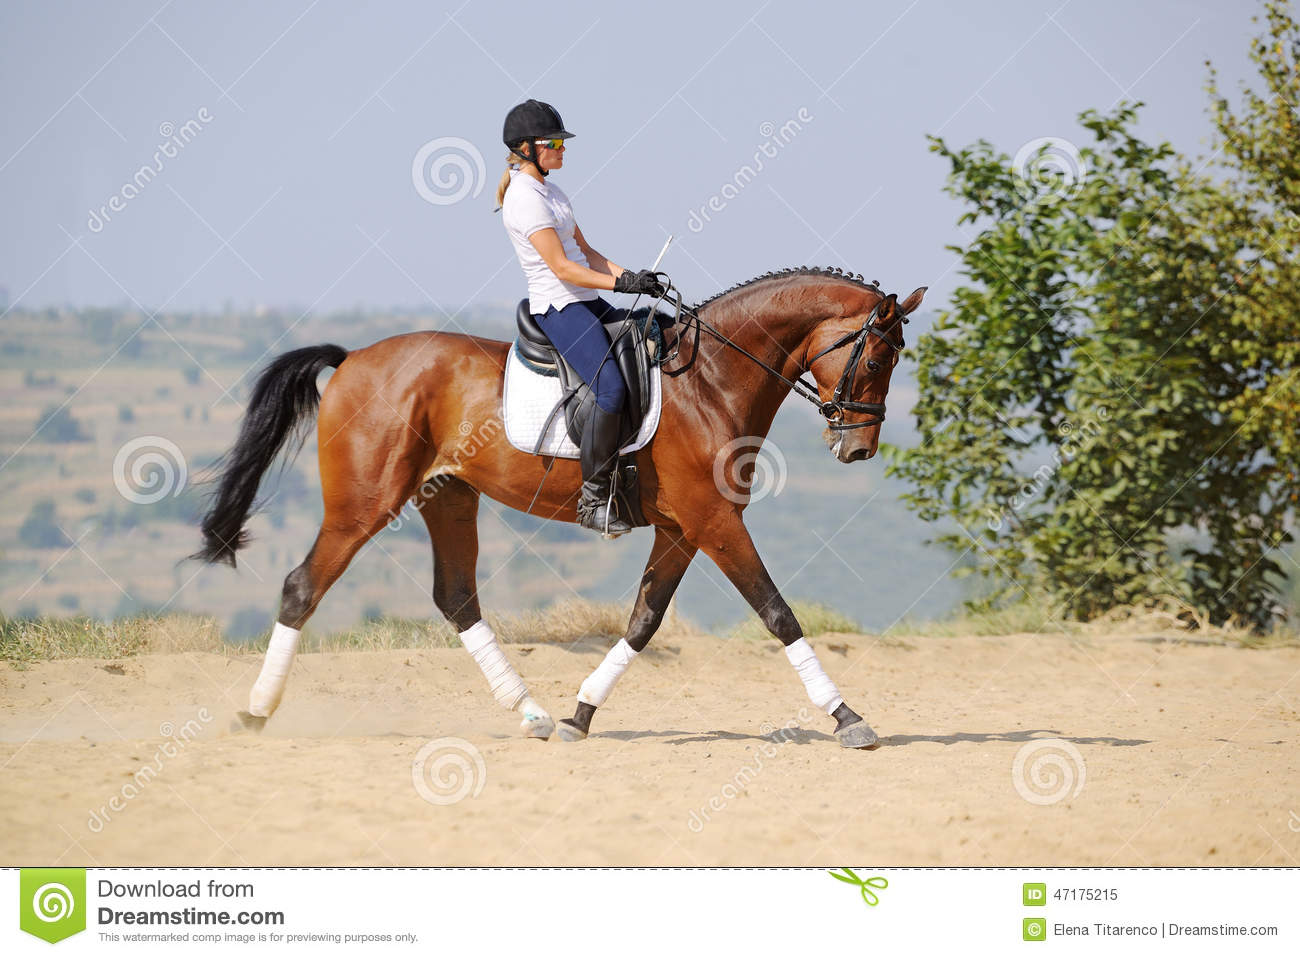 Rider On Bay Dressage Horse Going Trot Stock Image  Image of sport show 47175215